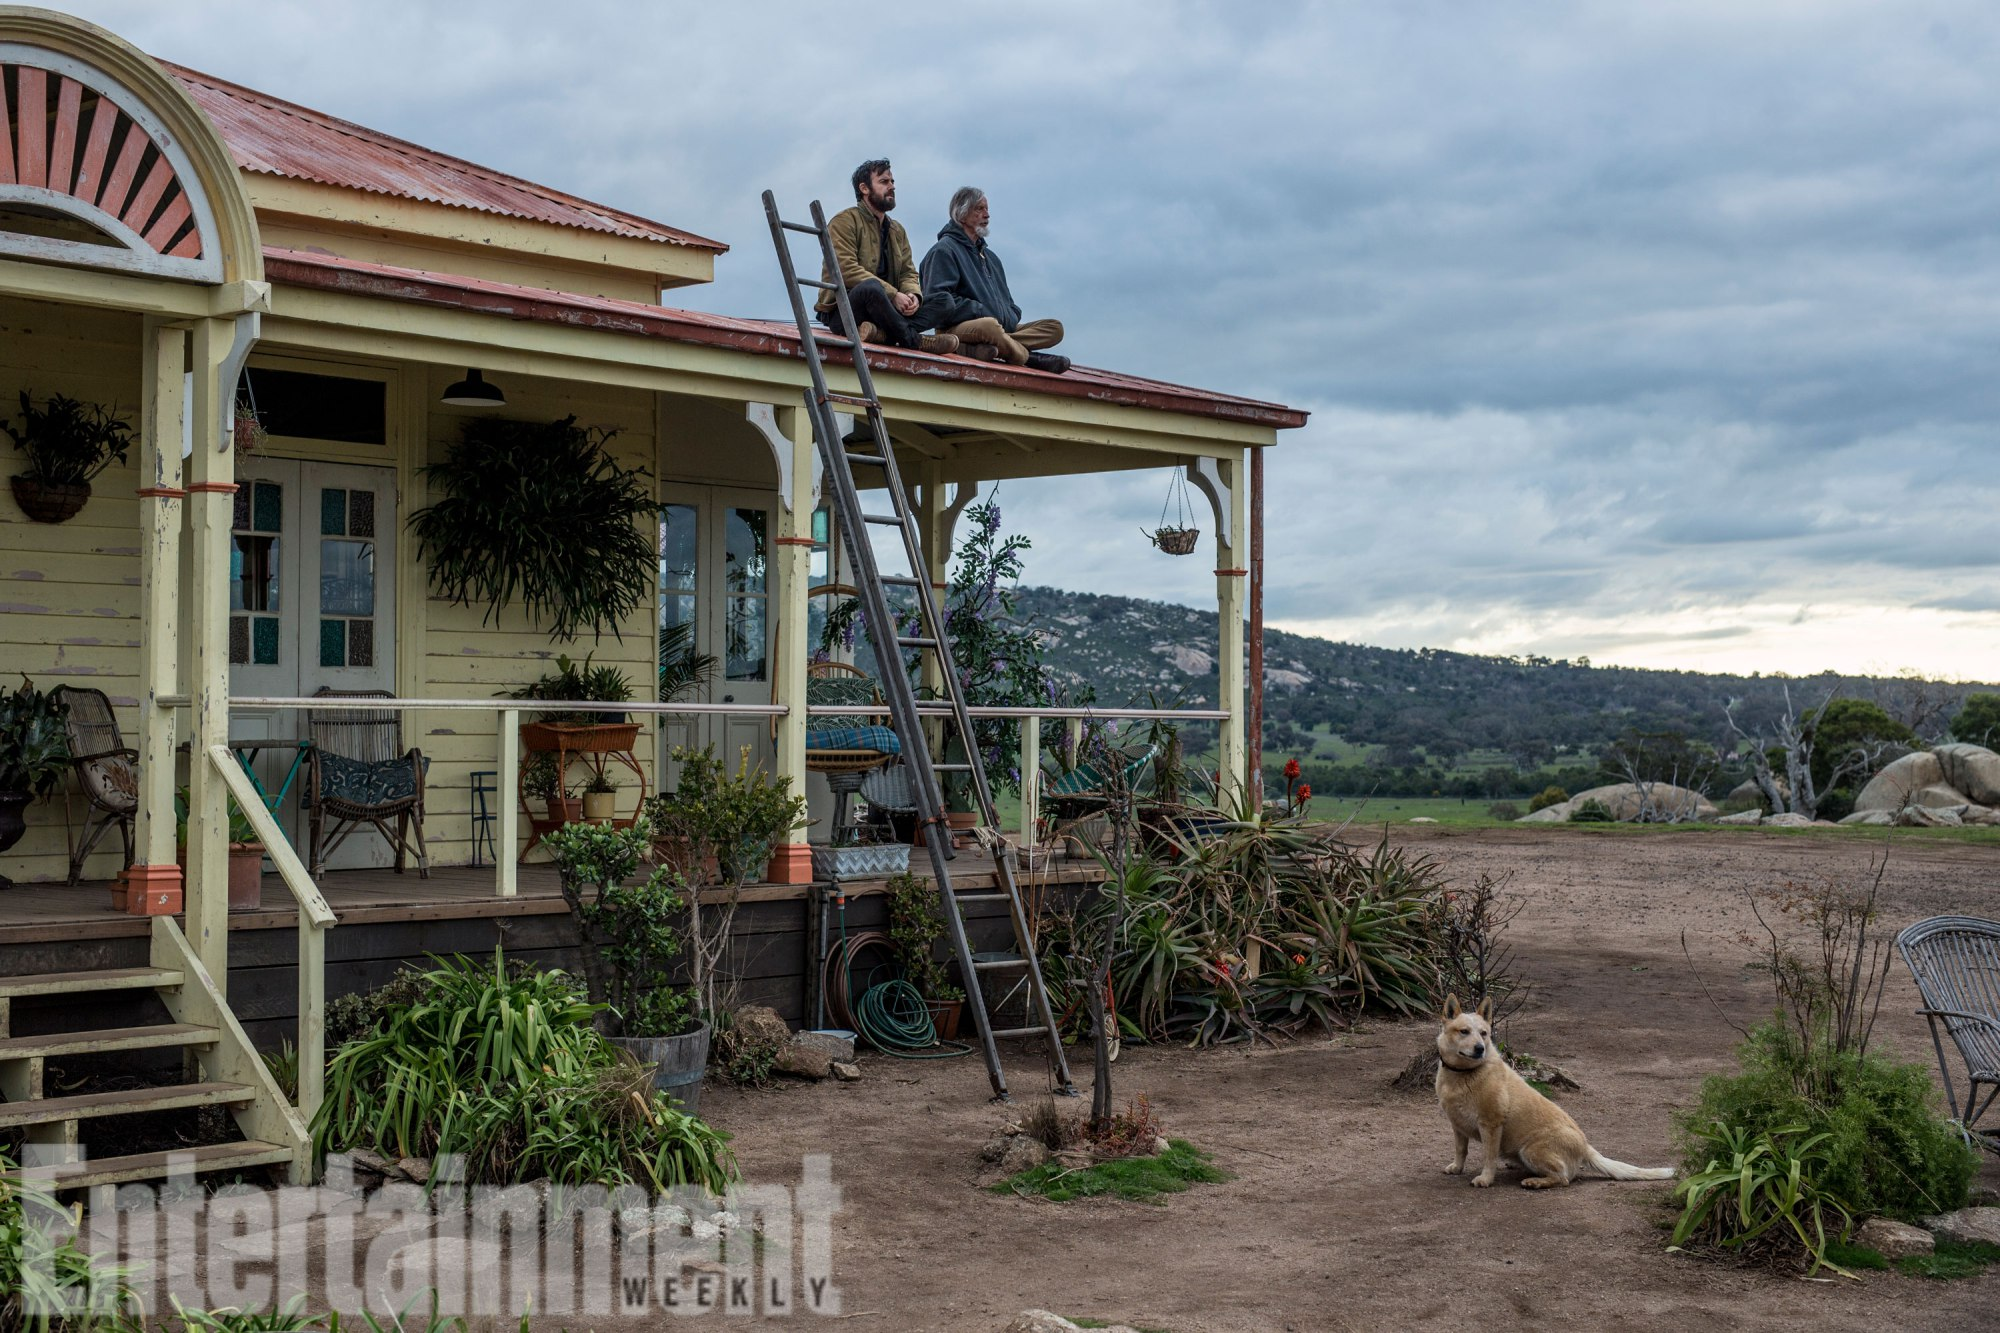 THE LEFTOVERS Season 3 Theroux as Kevin Garvey and Scott Glenn as Kevin Garvey Sr. in Australia